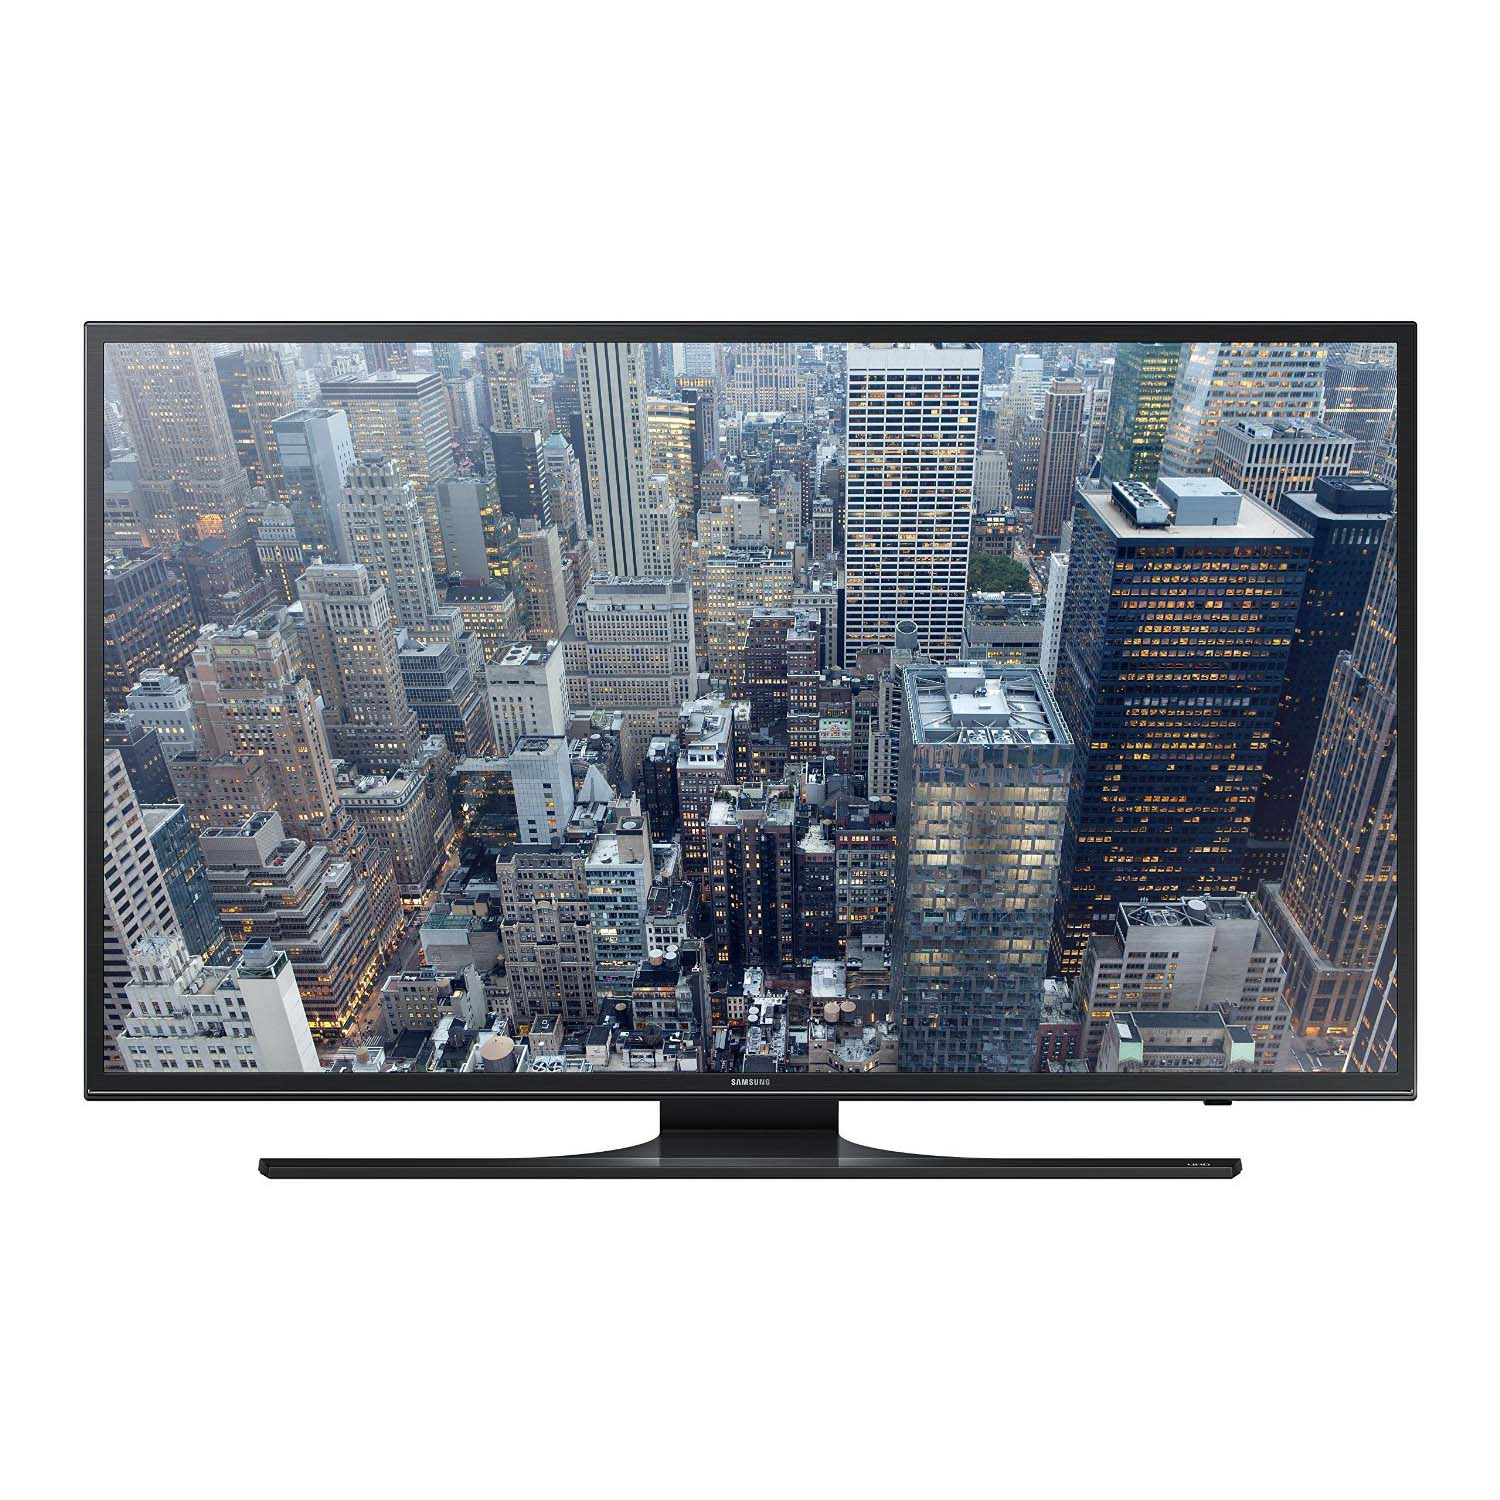 Samsung UN75JU6500 75-Inch 4K Ultra HD Smart LED TV (2015 Model) *관부가세 별도*